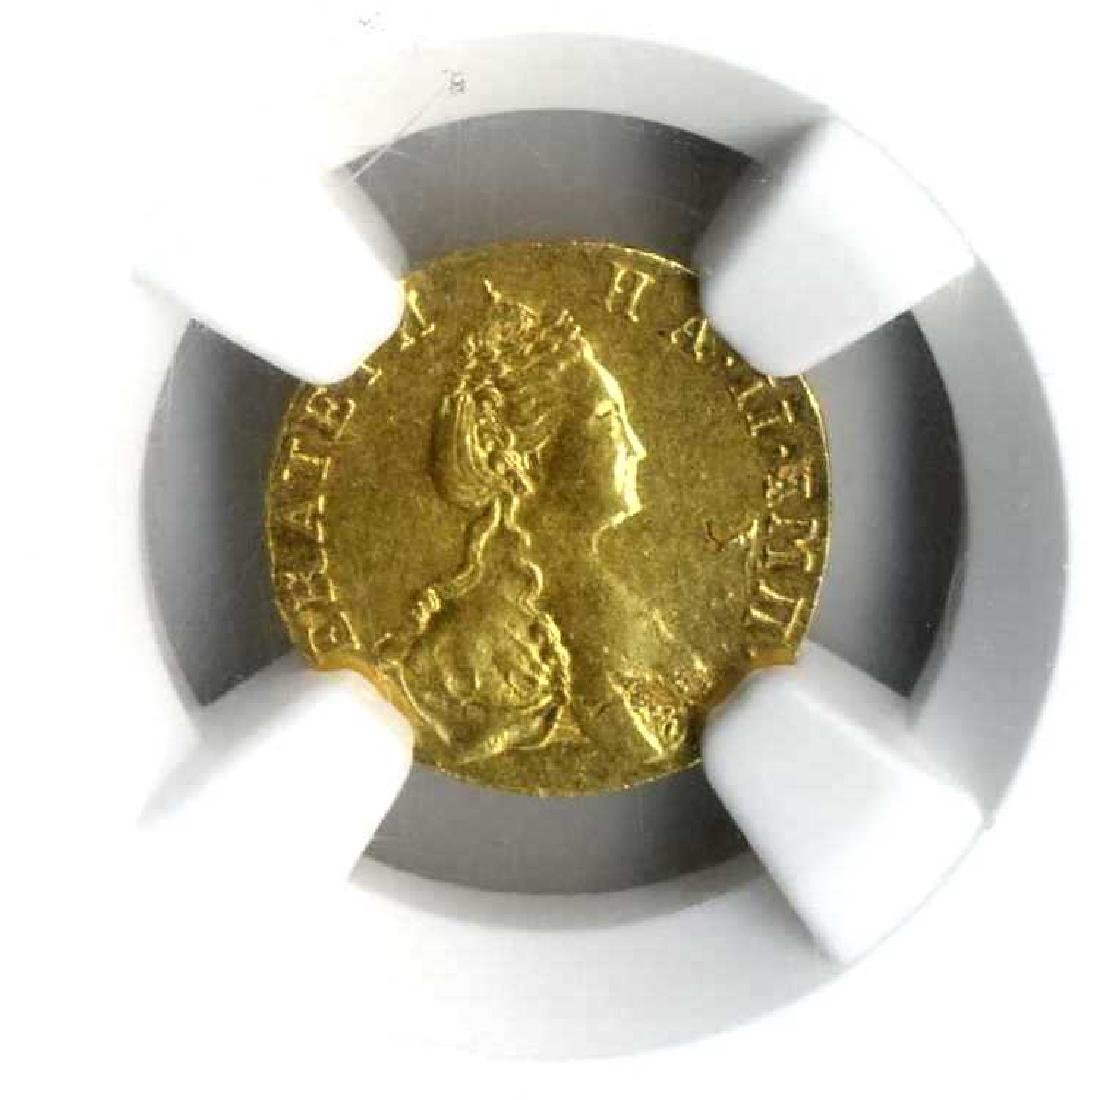 Gold Coin - Russia Poltina - 1777 Graded by the NGC: